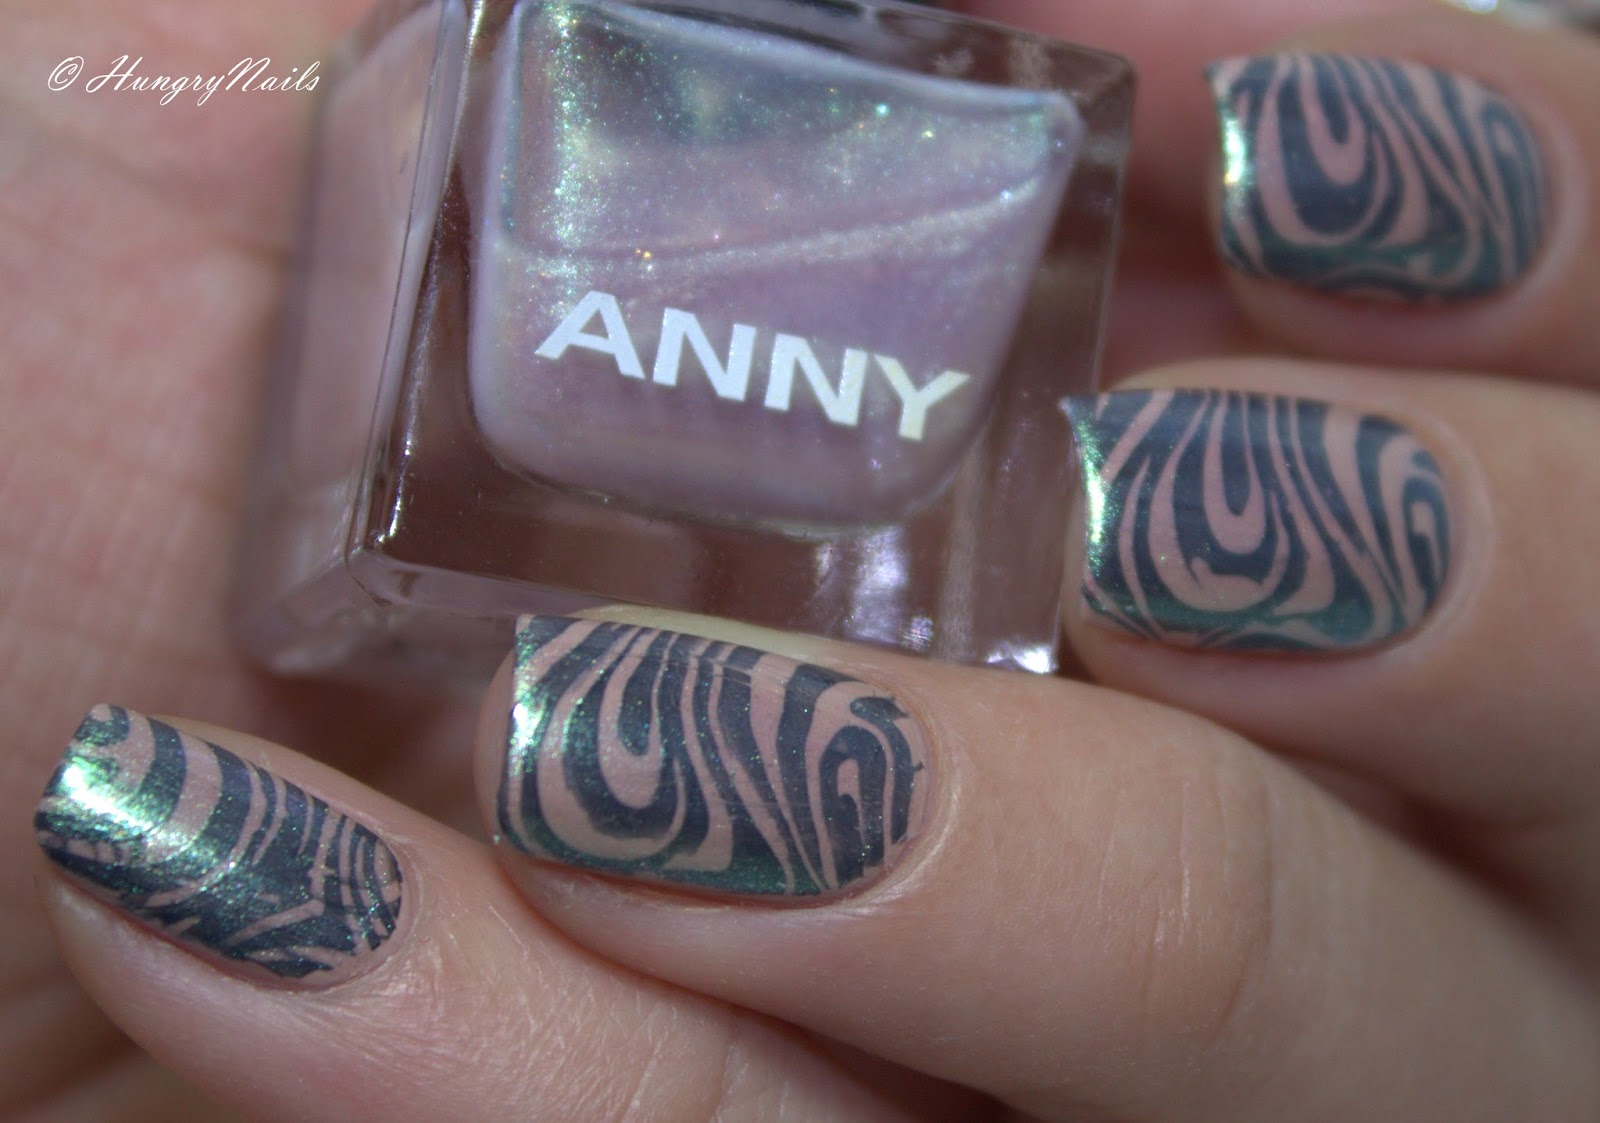 http://hungrynails.blogspot.com/2015/02/lacke-in-farbe-und-bunt-beige.html